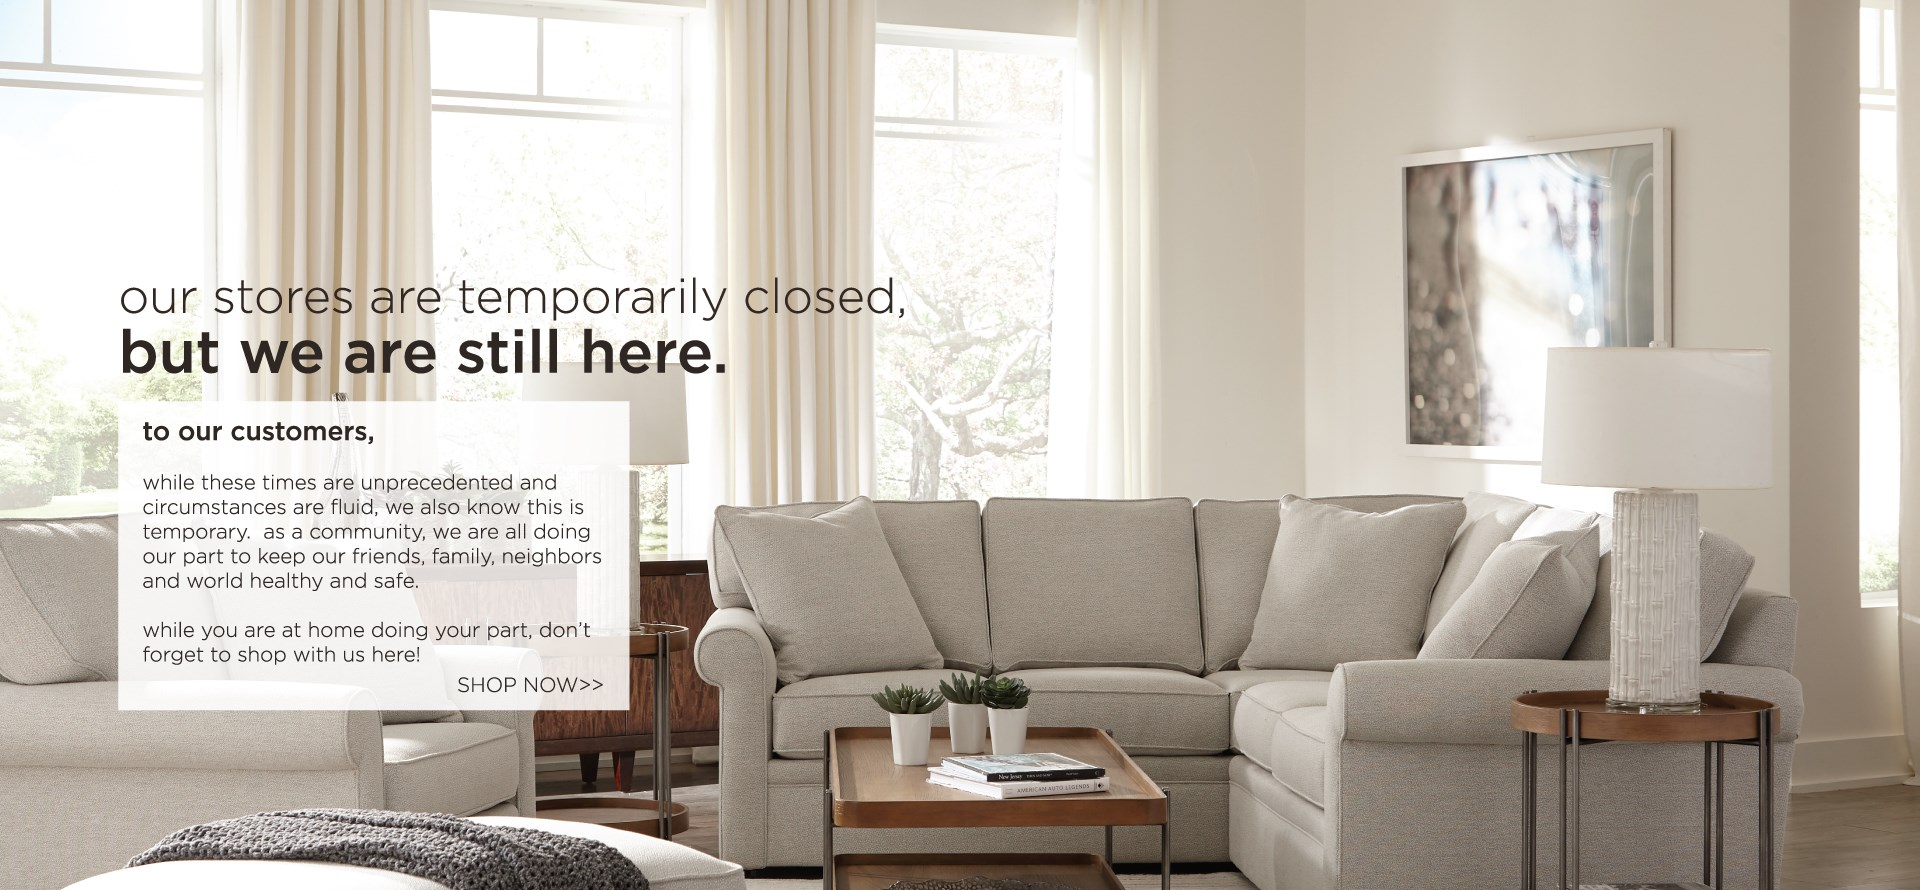 Our stores are temporarily closed, but we are still here.  Shop now!